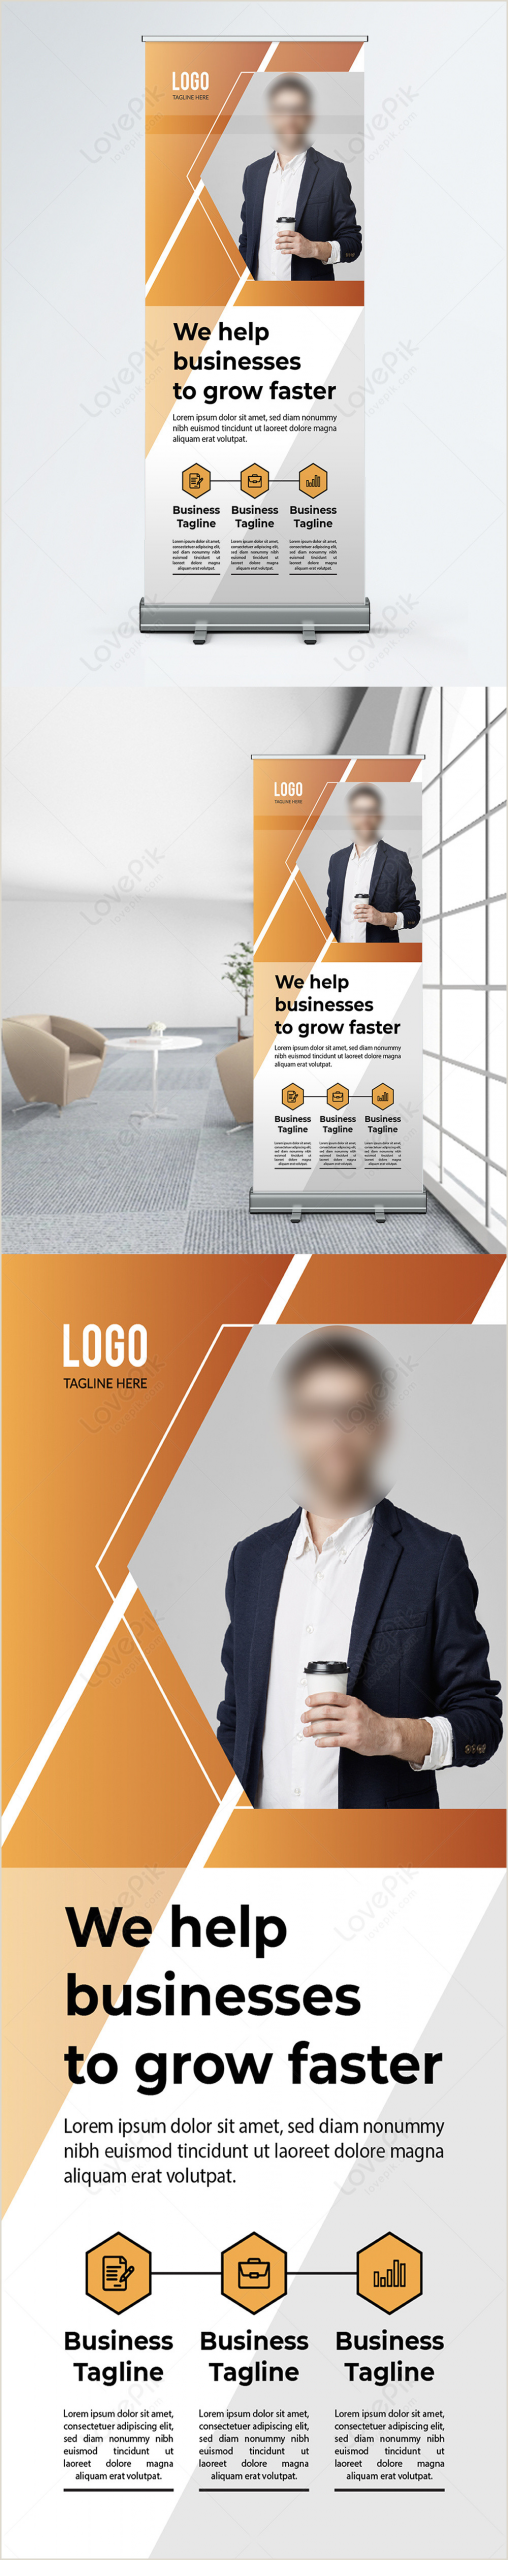 Roll Up Advertising Banners Modern Marketing Agency Promotion Roll Up Banner Template